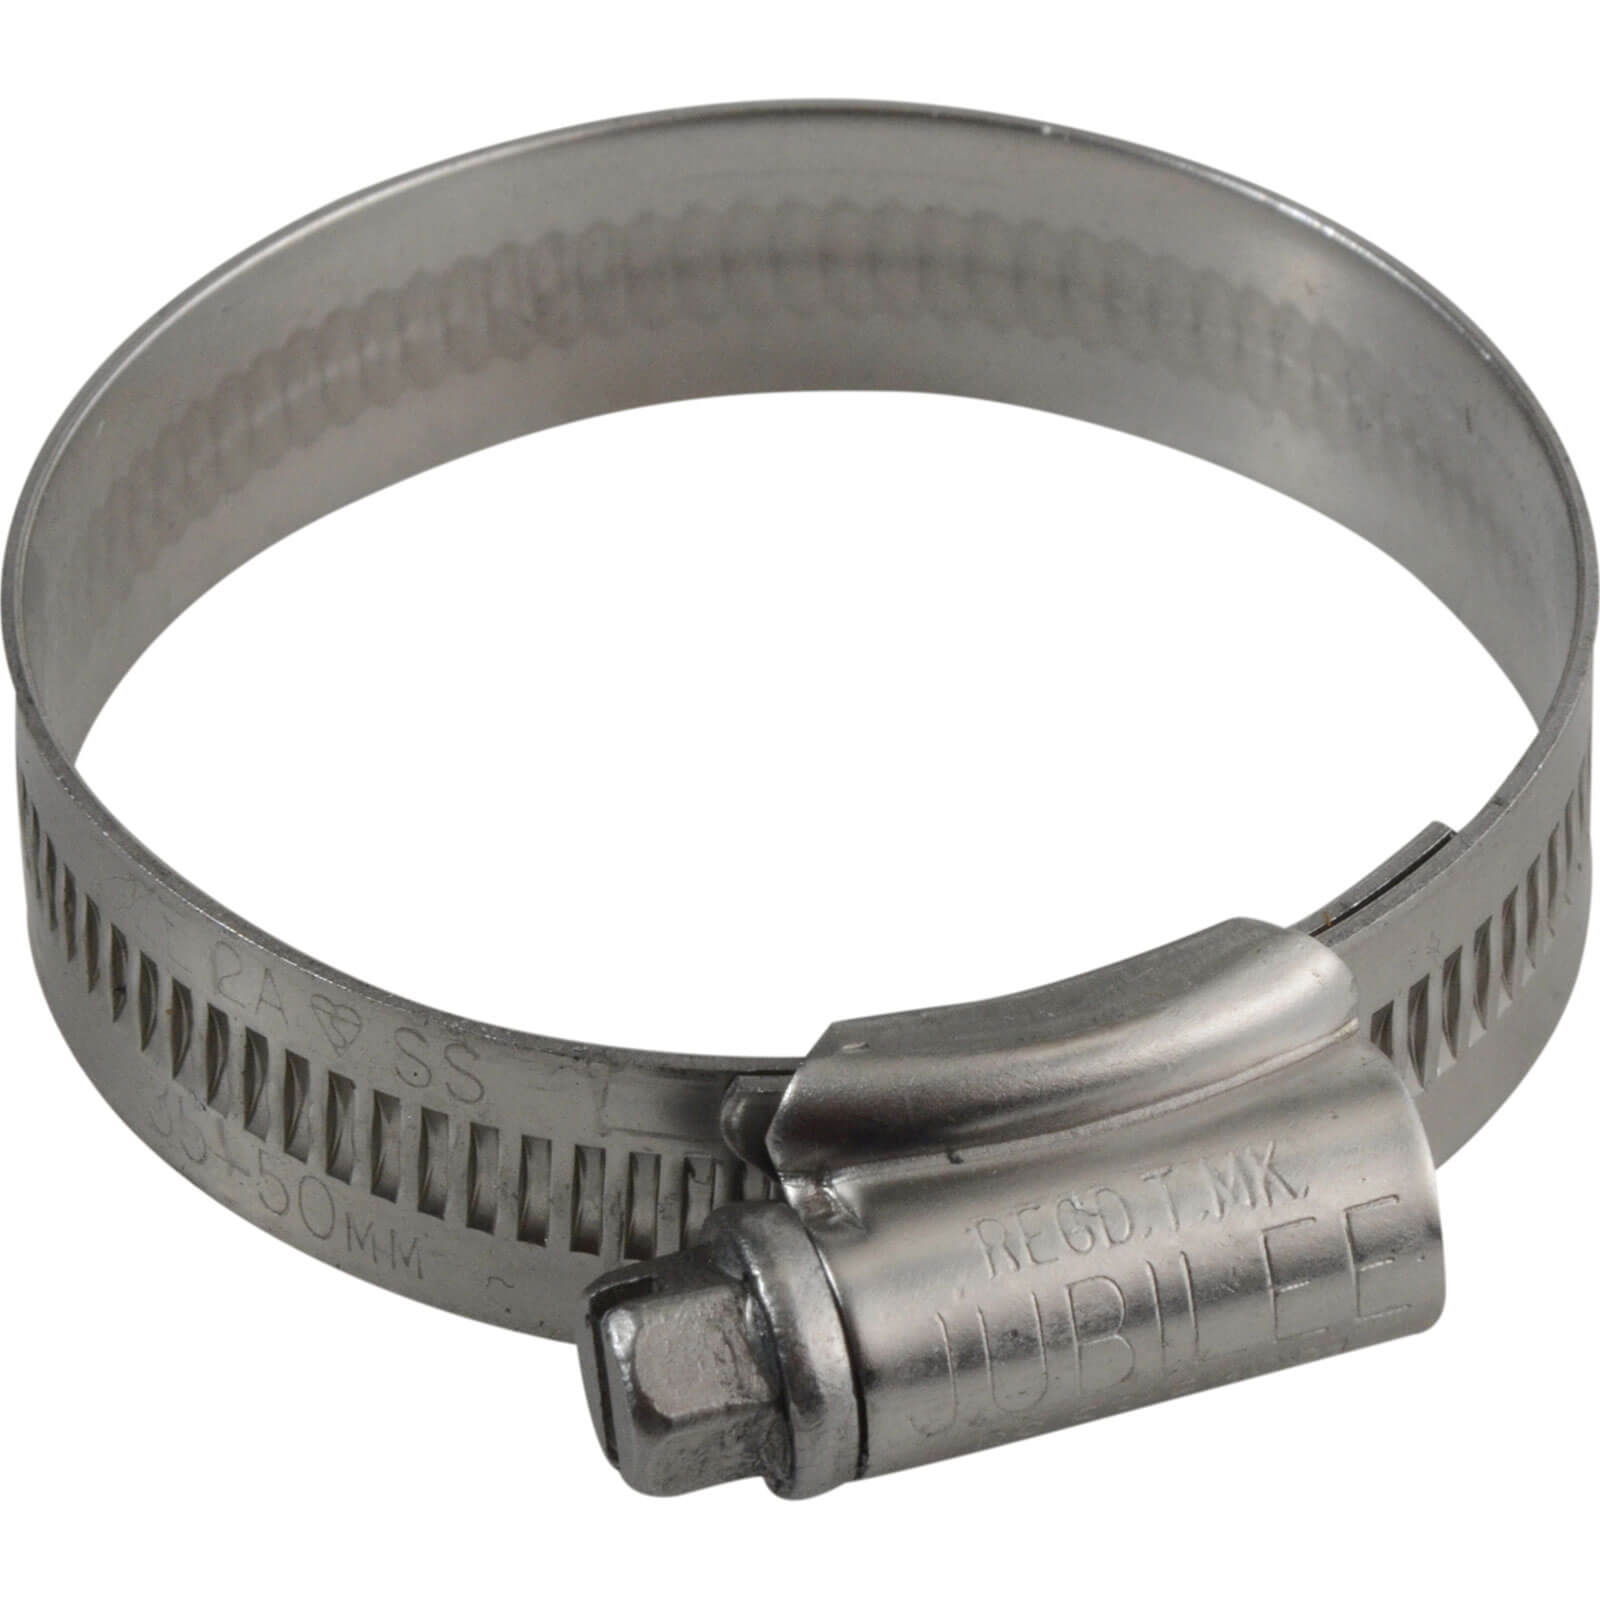 Image of Jubilee Stainless Steel Hose Clip 35mm - 50mm Pack of 1